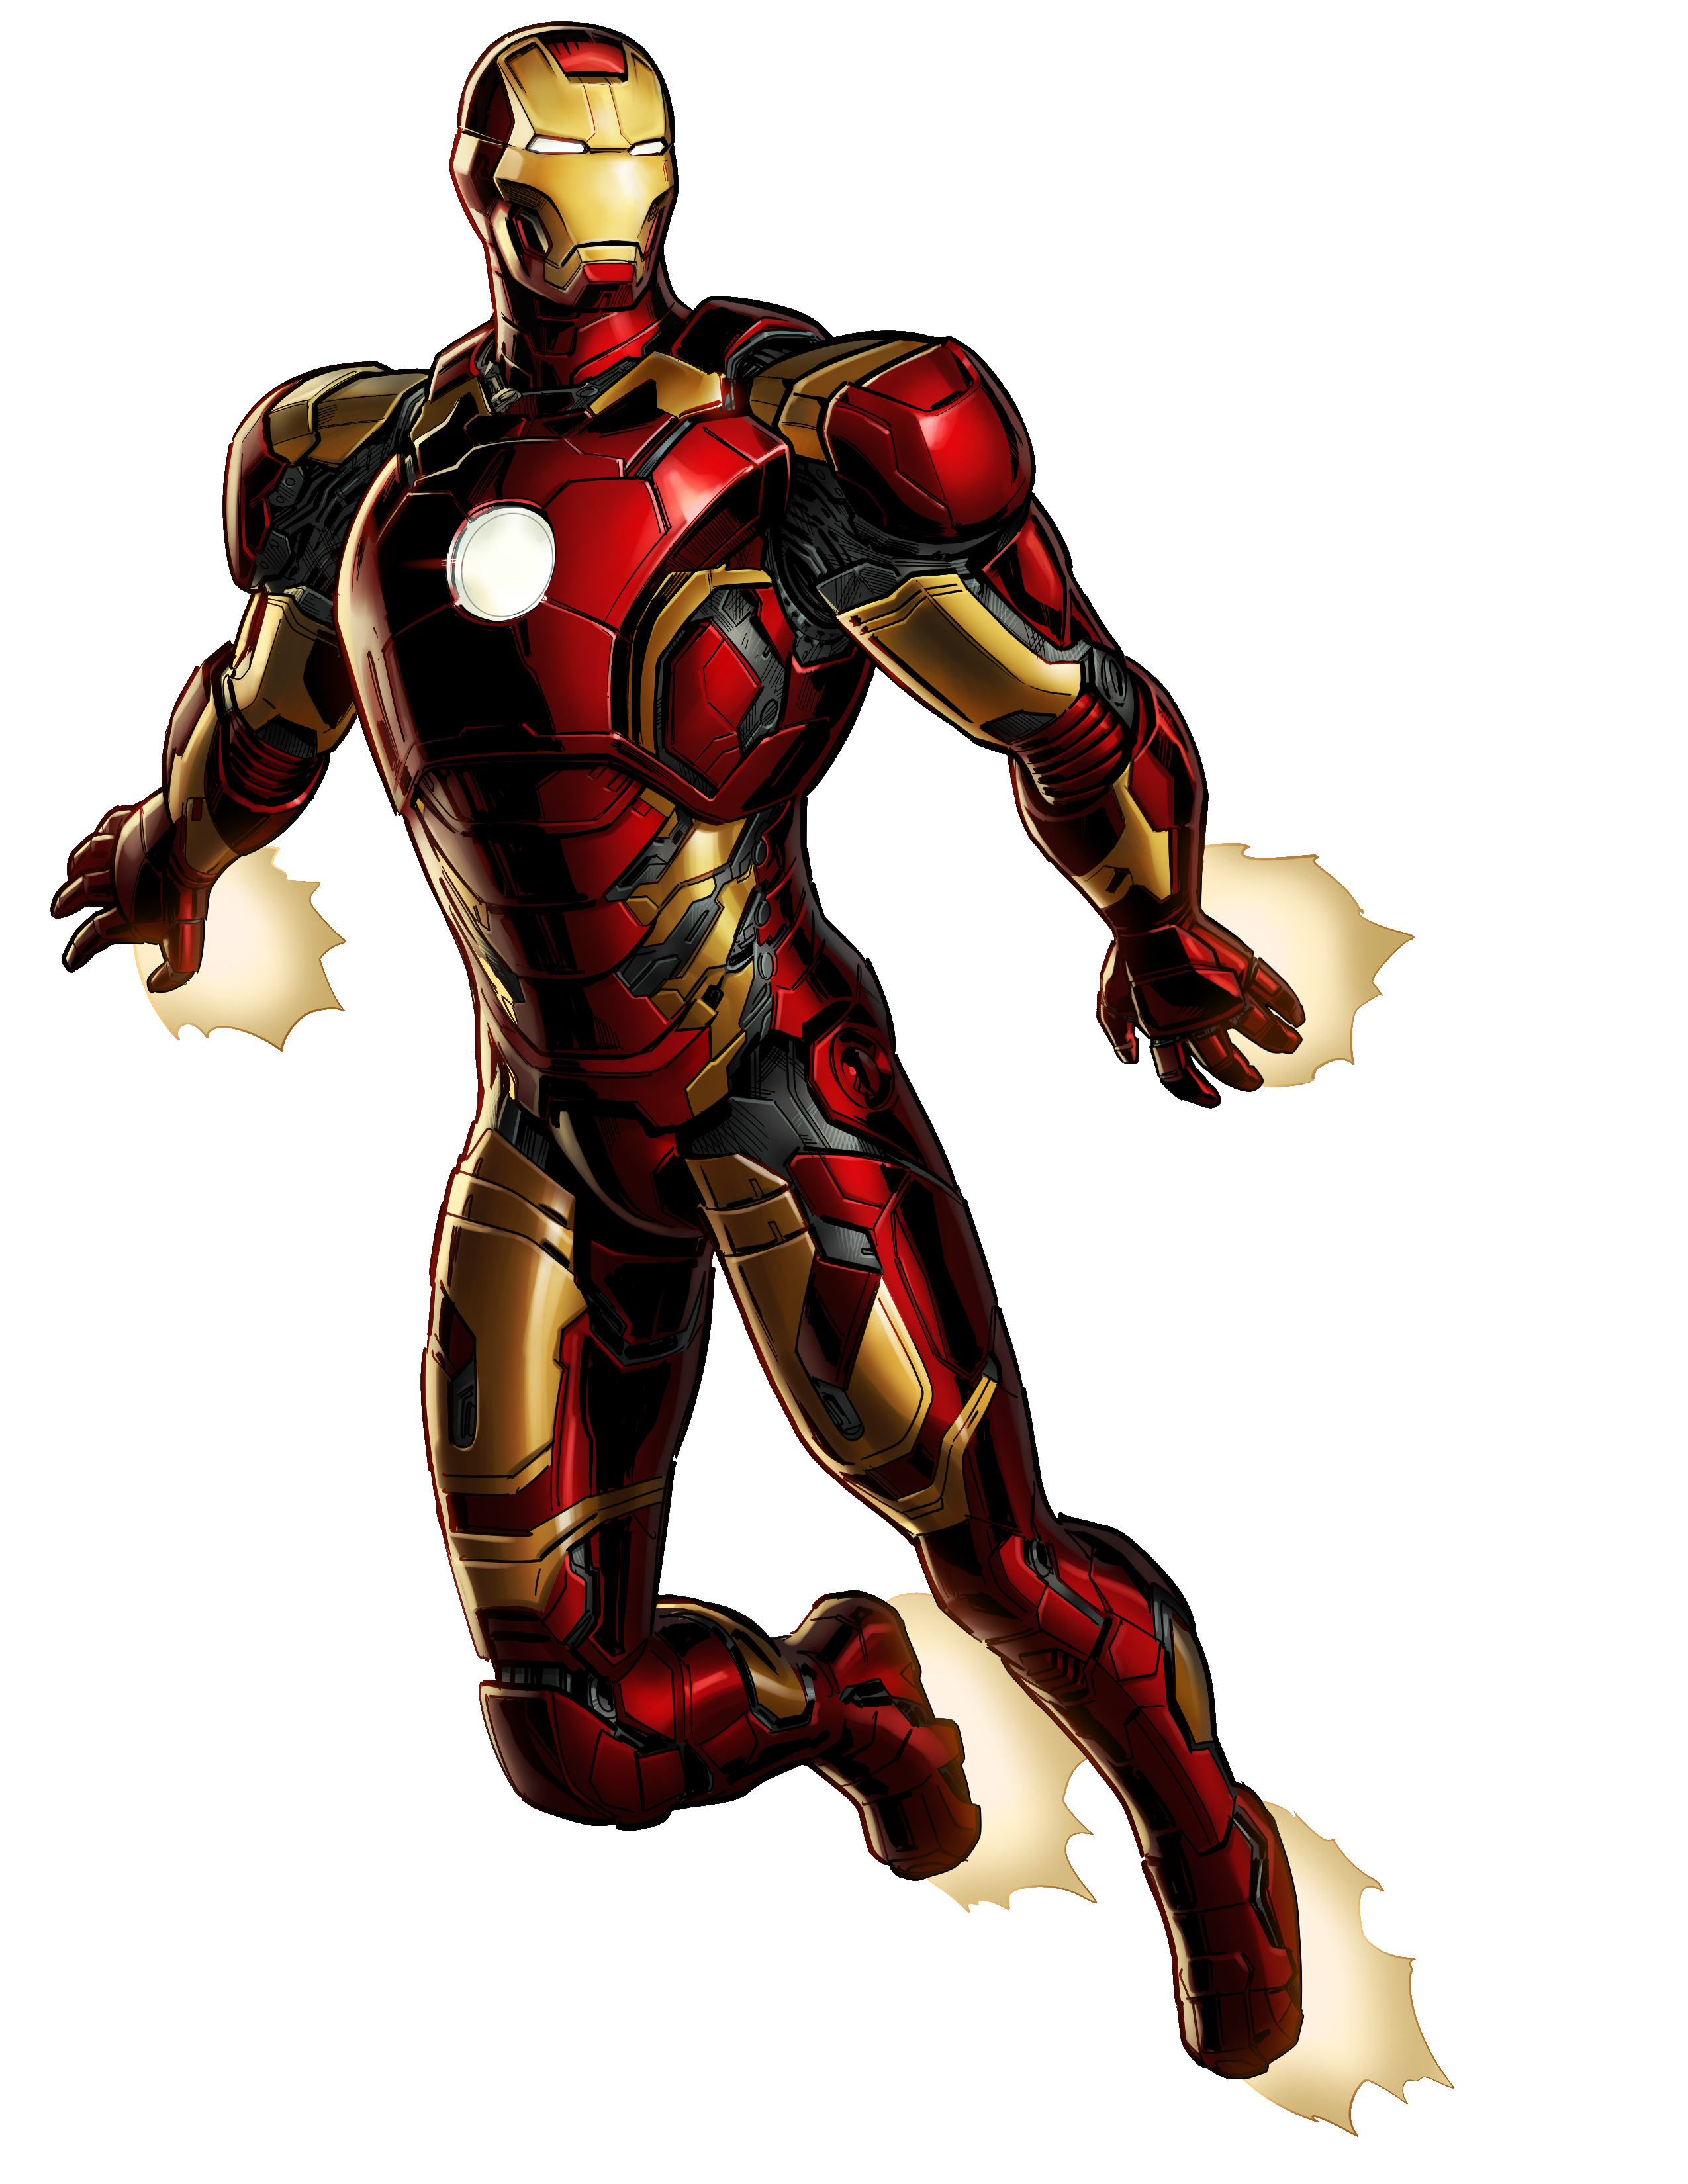 ironman images download #8713